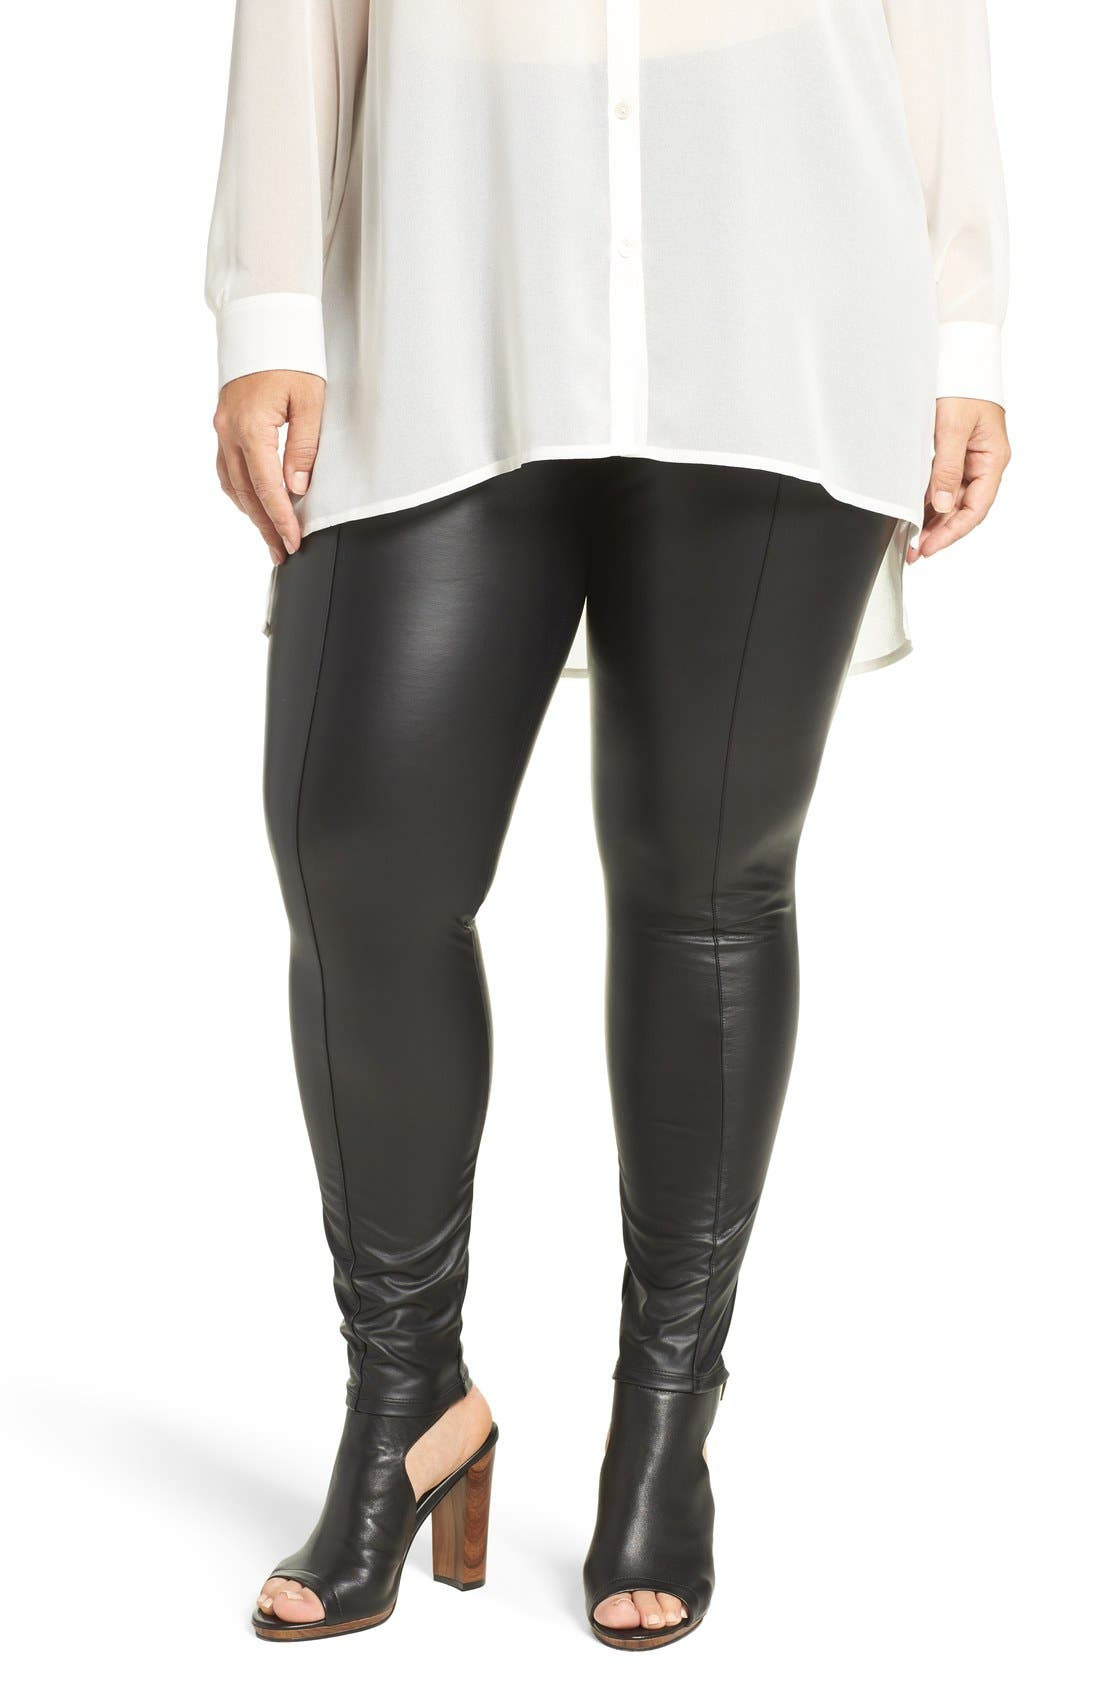 Alternate Image 1 Selected - Lyssé High Waist Faux Leather Leggings (Plus Size)